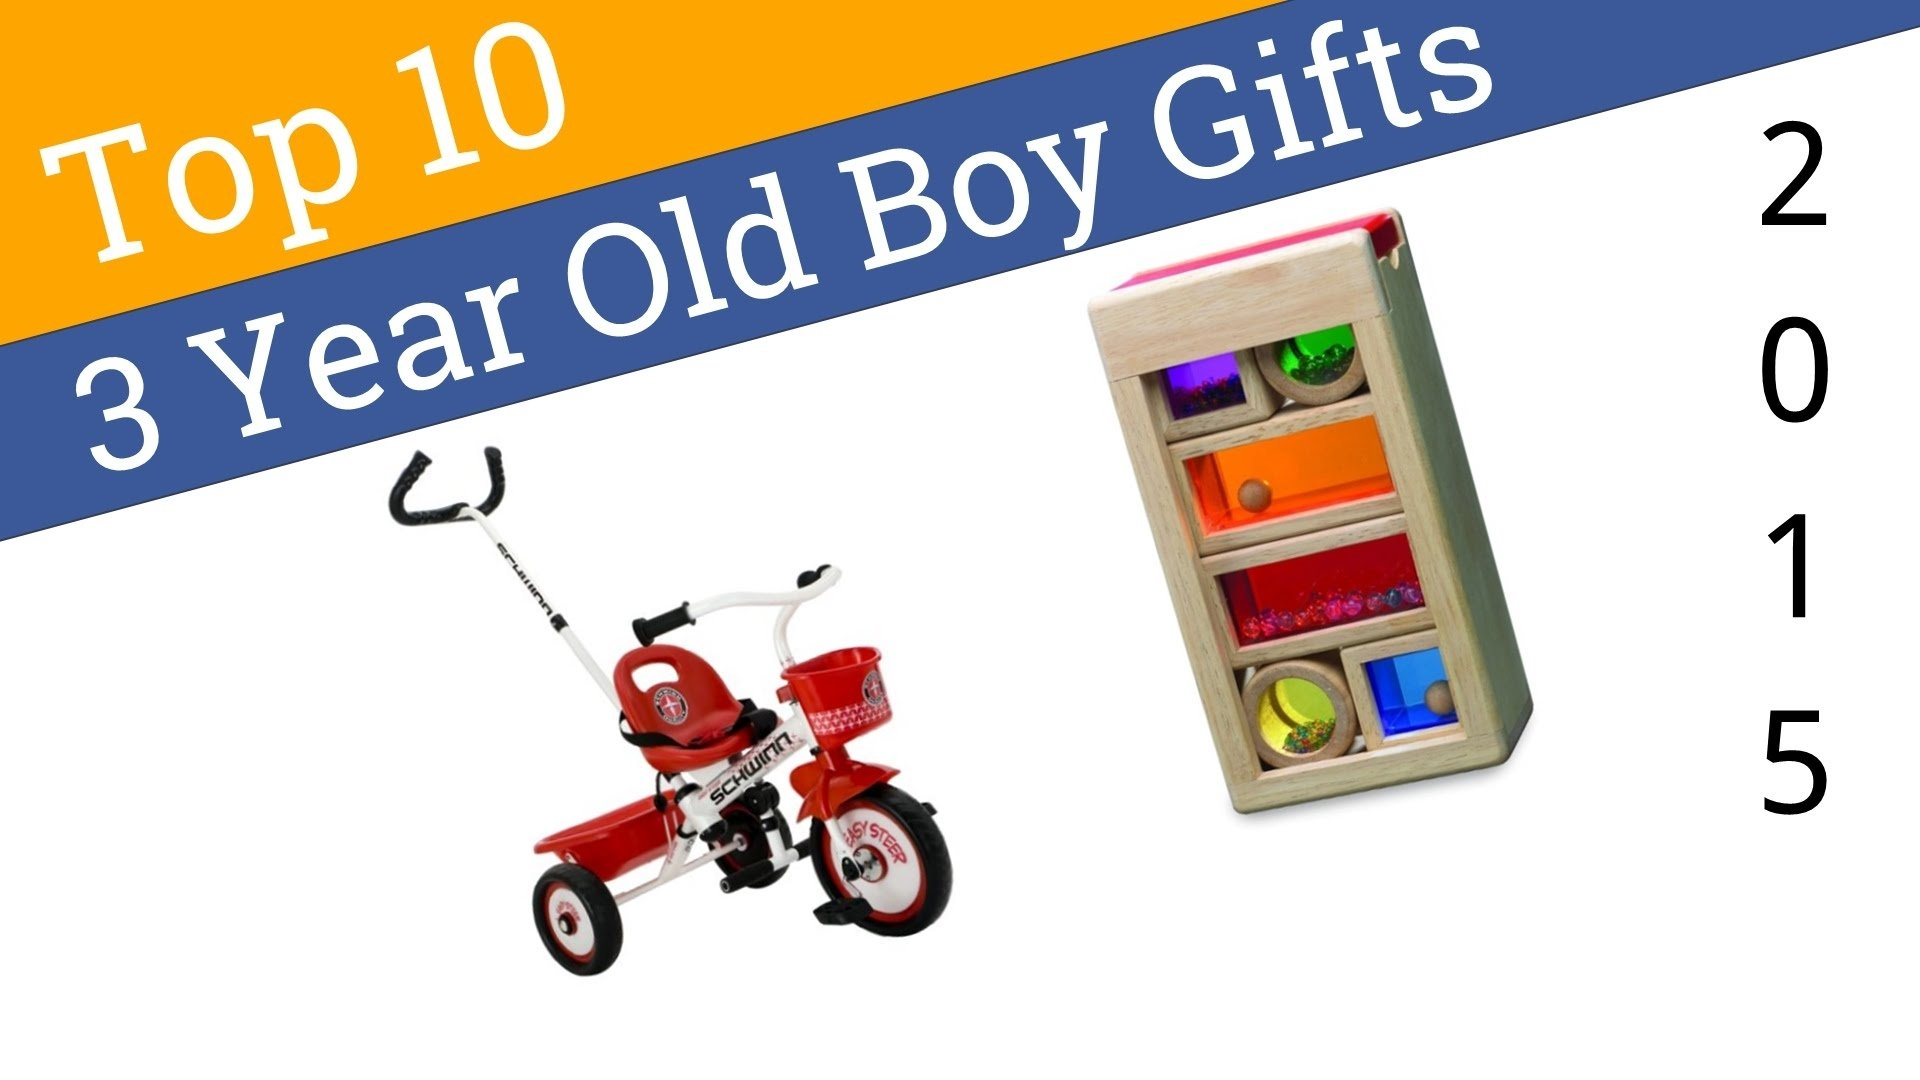 10 Unique Gift Ideas For 3 Year Old Boy 10 best 3 year old boy gifts 2015 youtube 3 2020